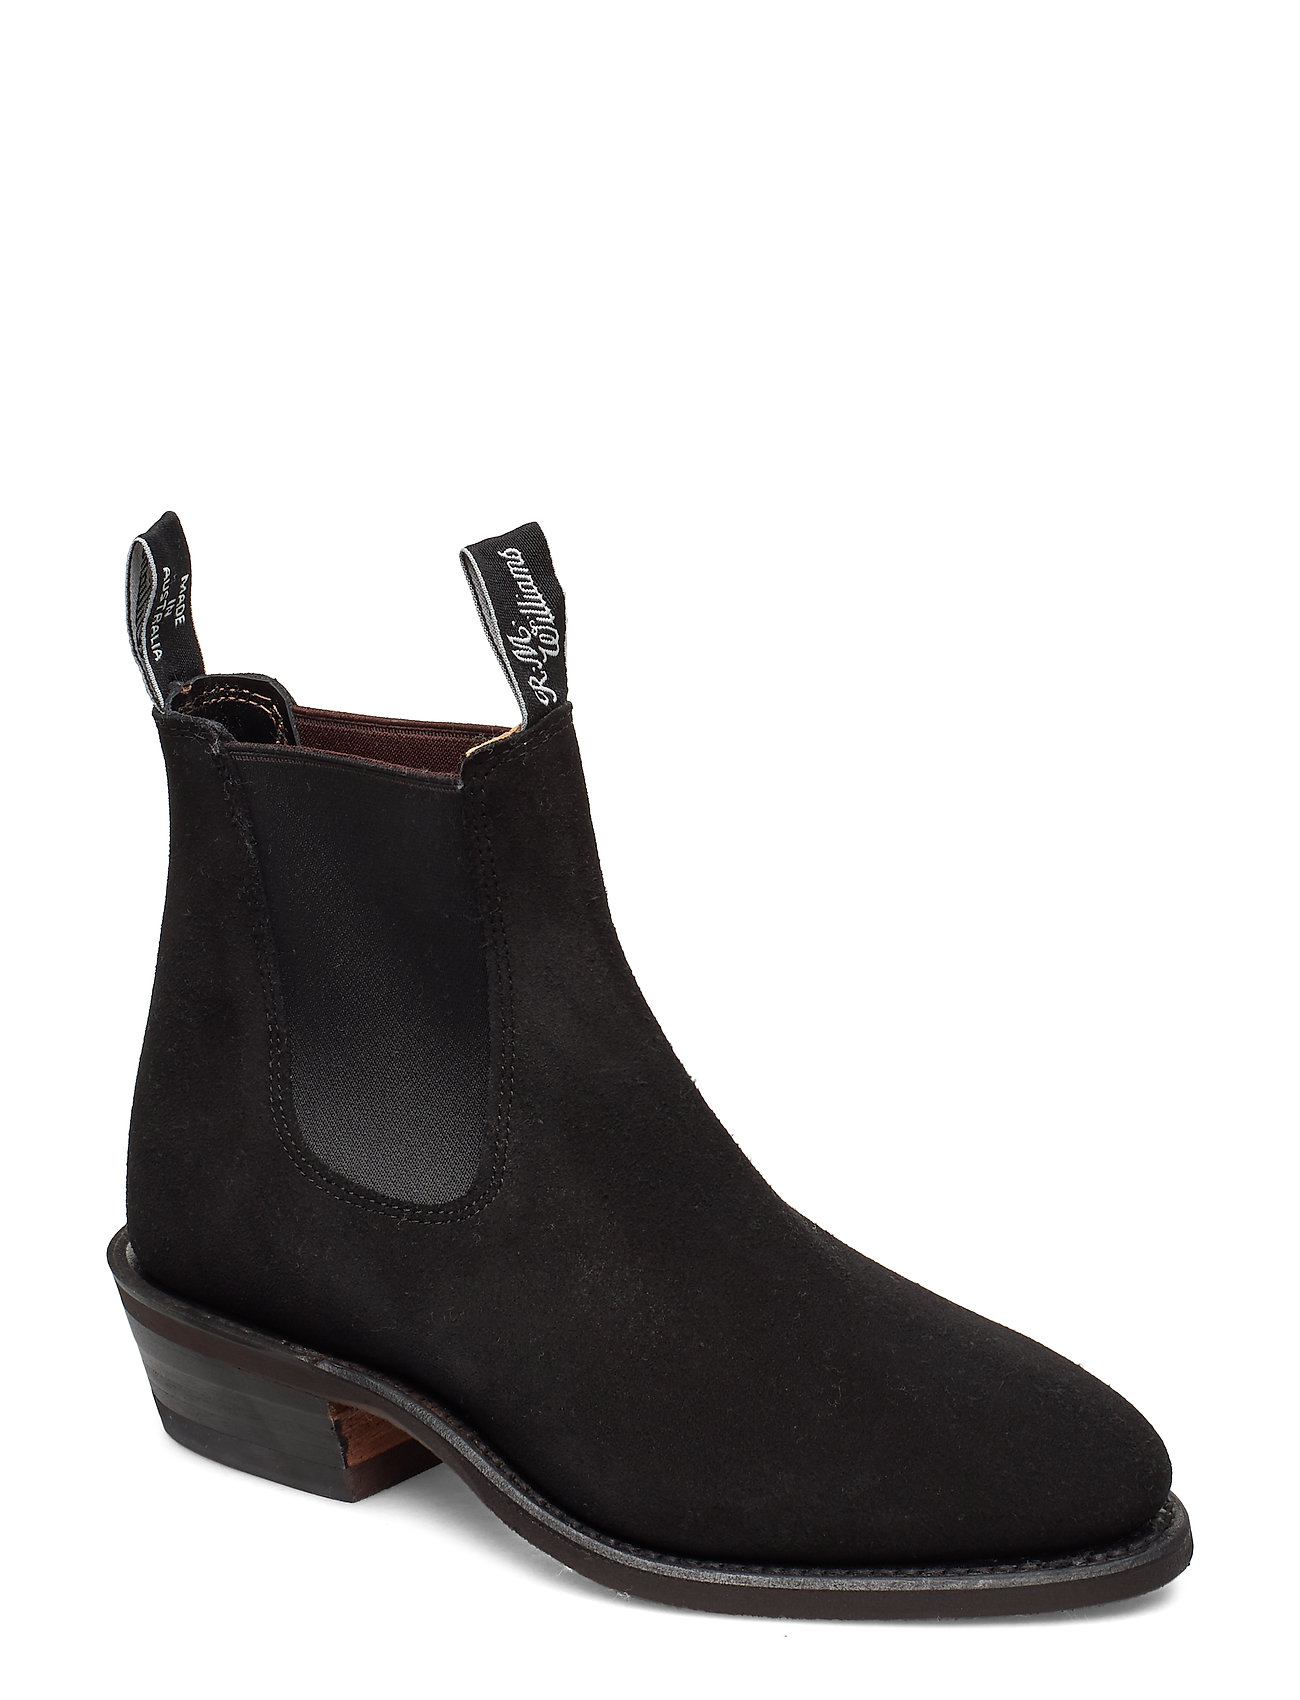 Image of The Yearling G Shoes Boots Ankle Boots Ankle Boot - Heel Sort R.M. Williams (3270672597)